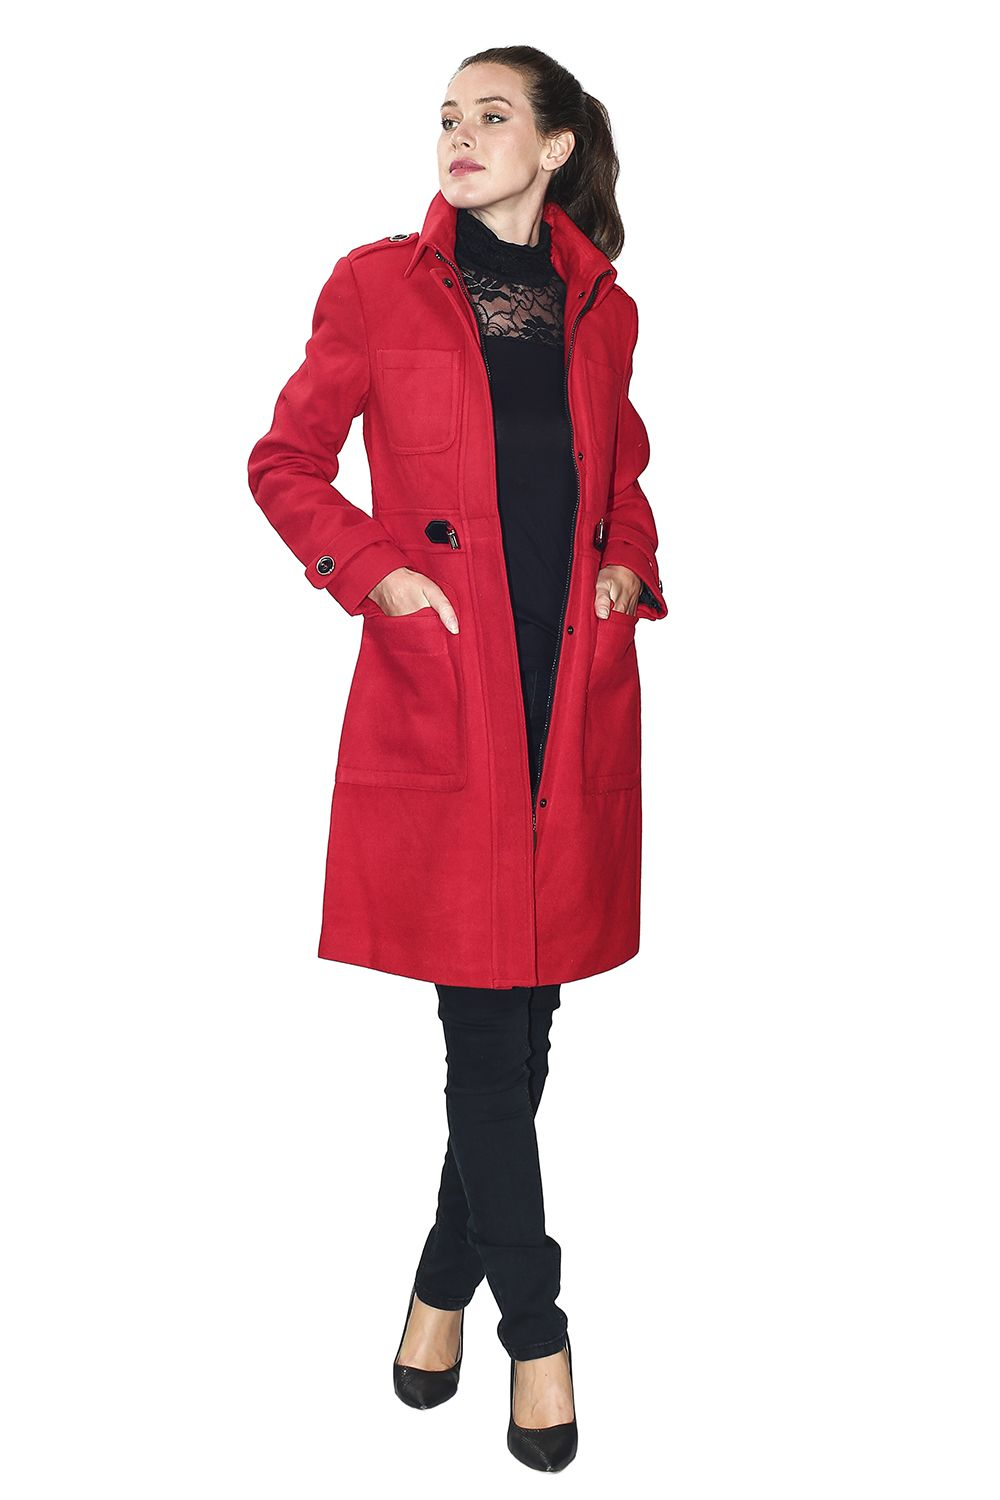 Assuili Long Coat with Shoulder Pads in Red